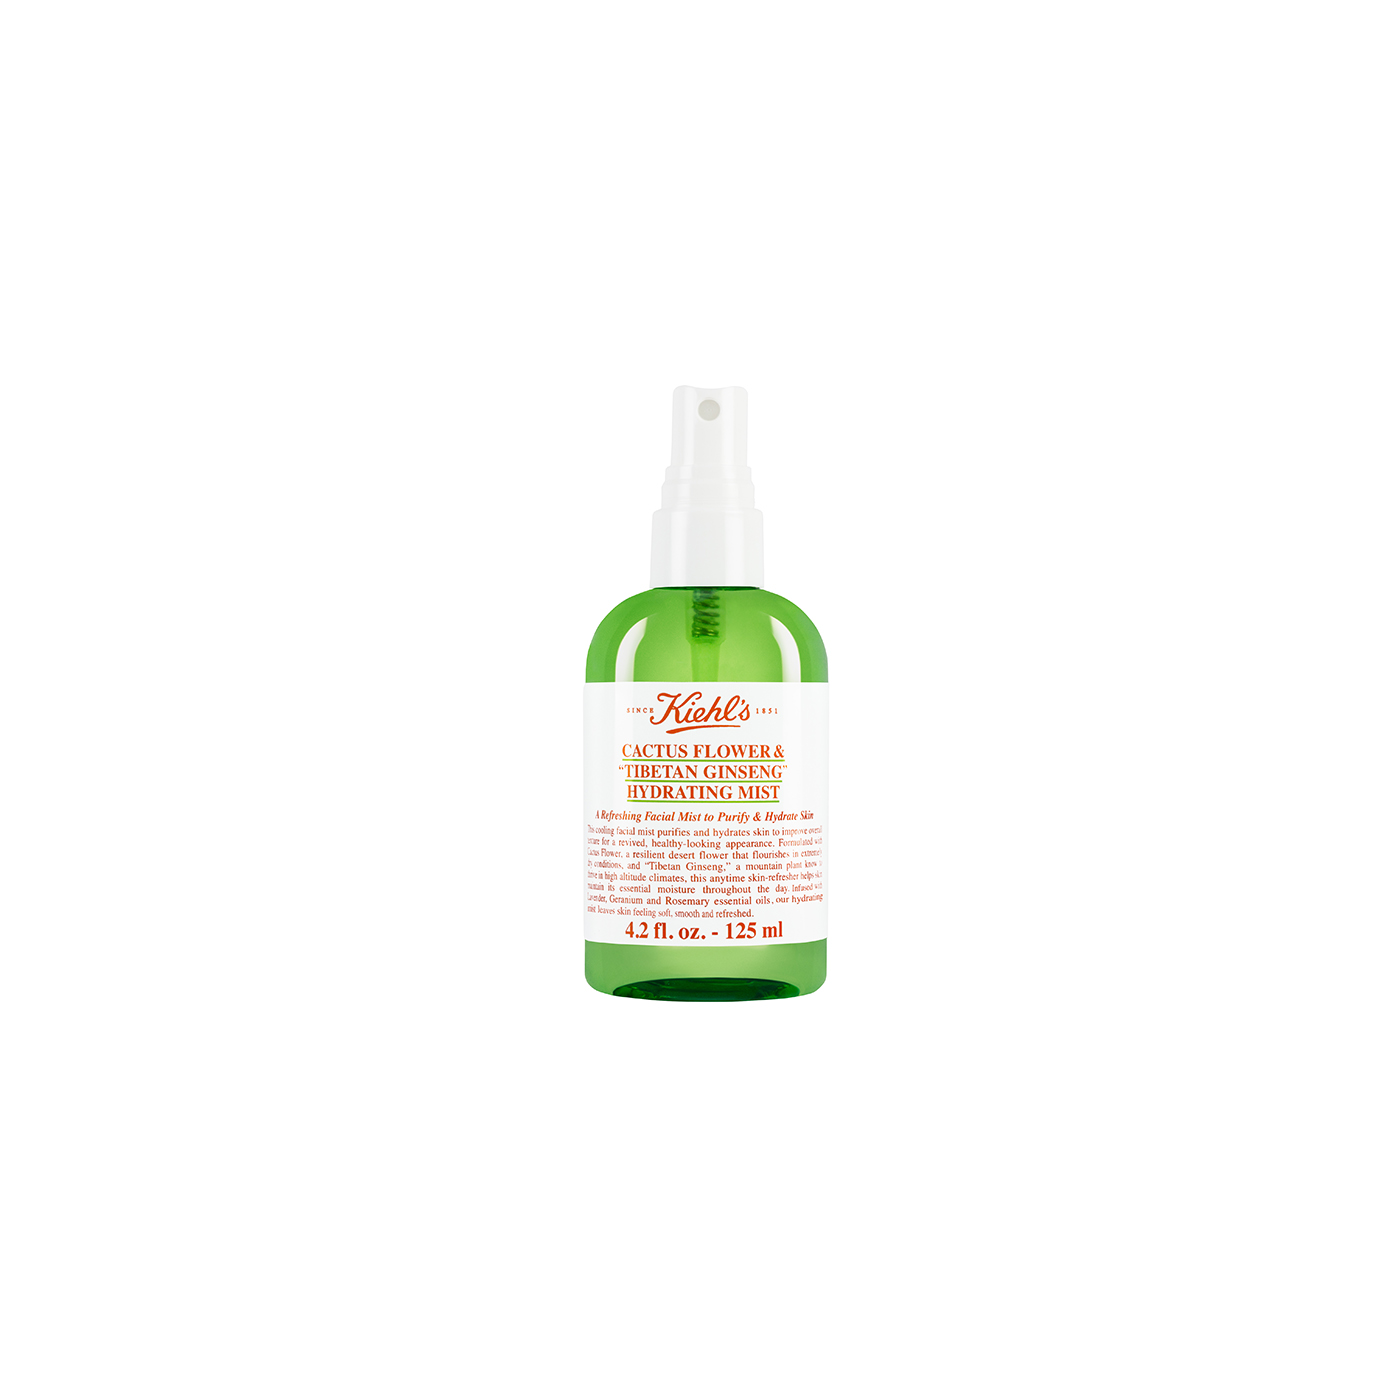 Kiehls Cactus Flower and Tibetan Ginseng Hydrating Mist